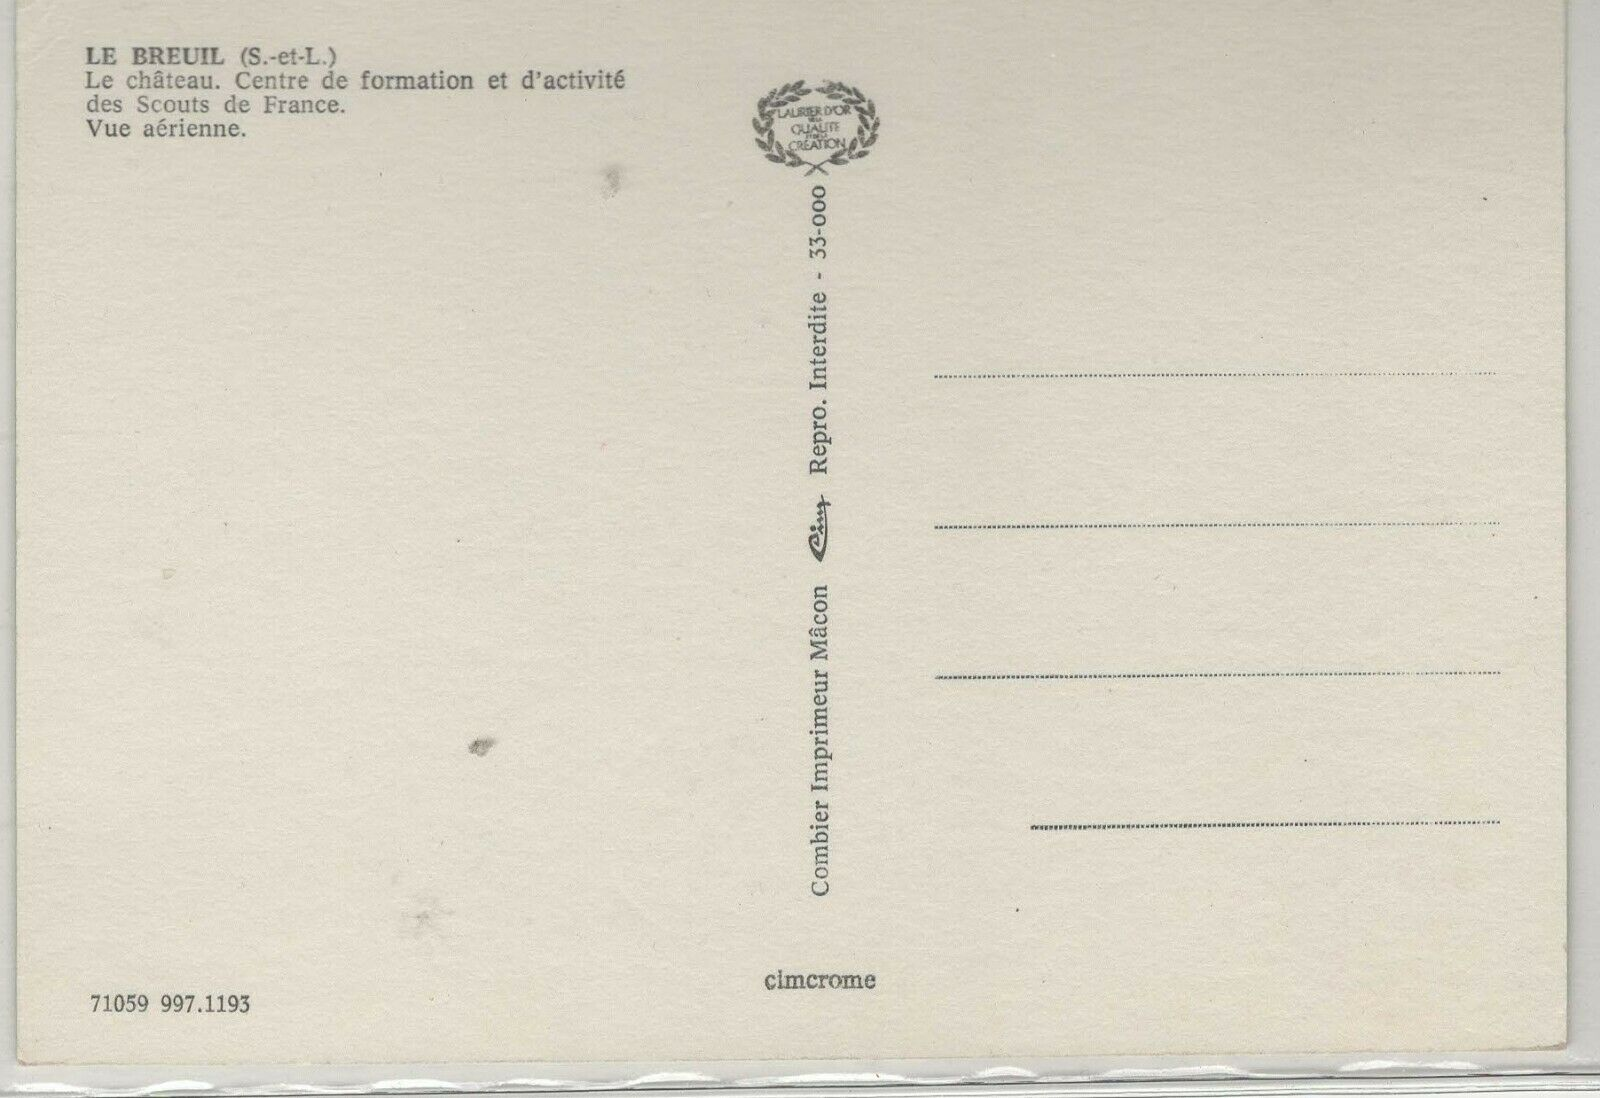 FRANCE PICTURE POST CARD SHOWING INFORMATION OFFICE OF THE BOY SCOUTS - $3.00